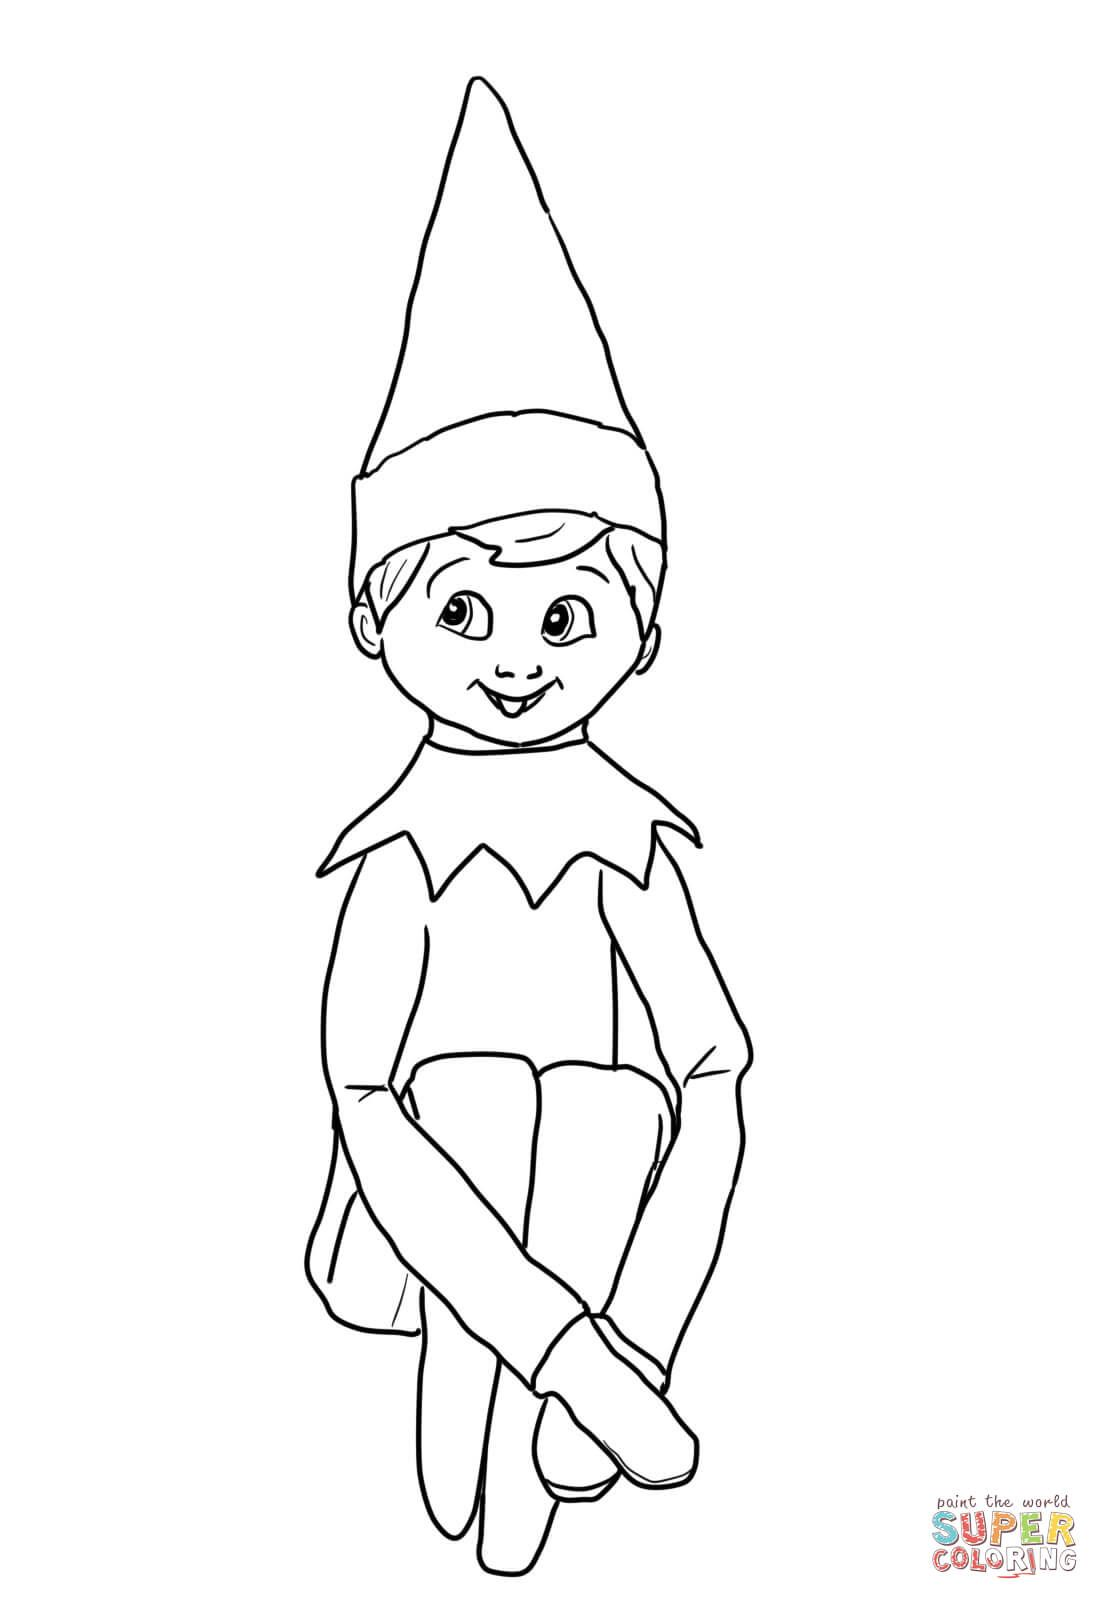 Santa S Elf Coloring Pages With These Free Printable Elves Also Christmas Trees